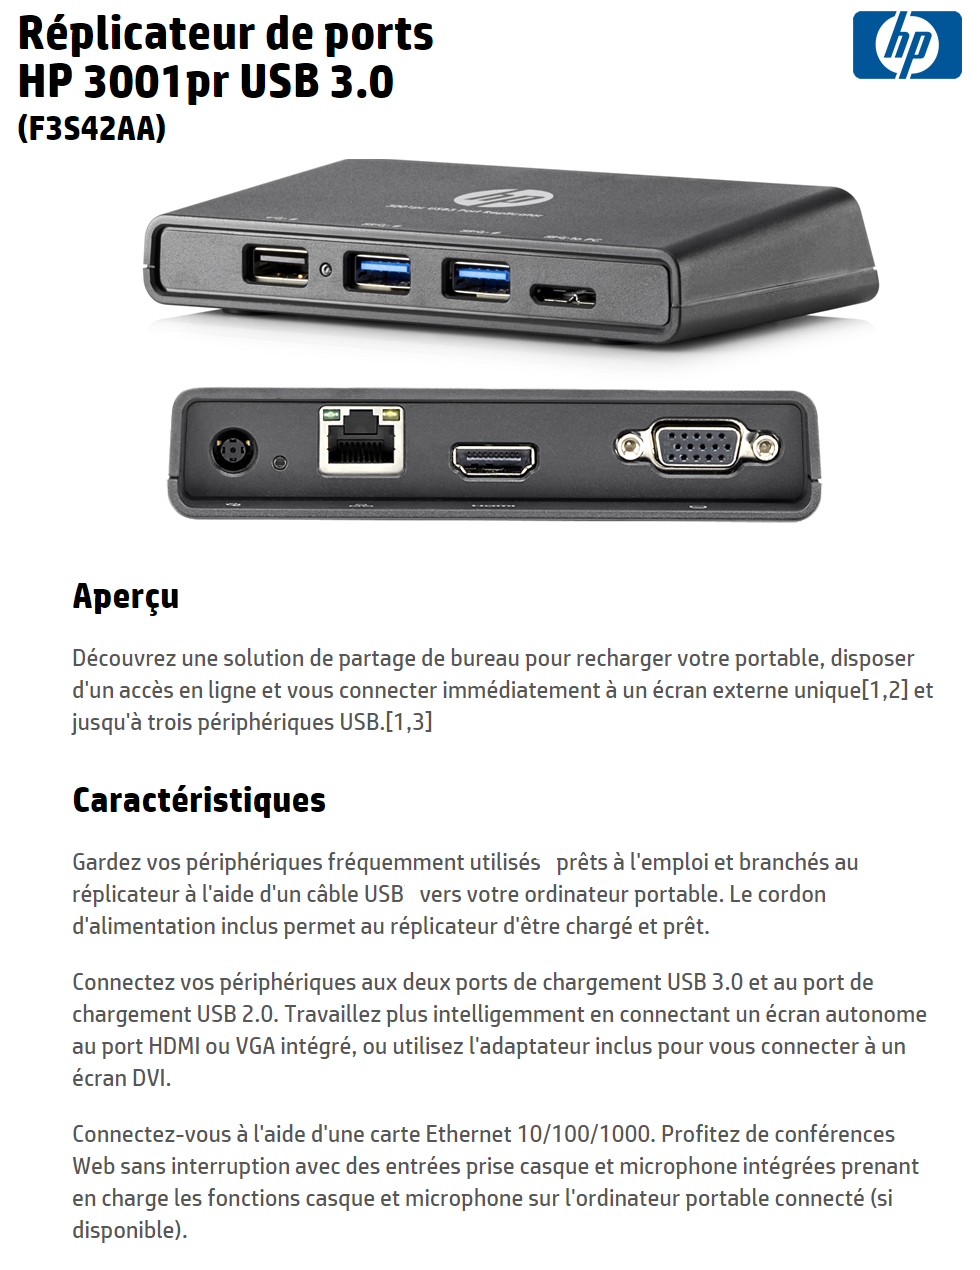 hp 3001pr usb 3.0 port replicator manual